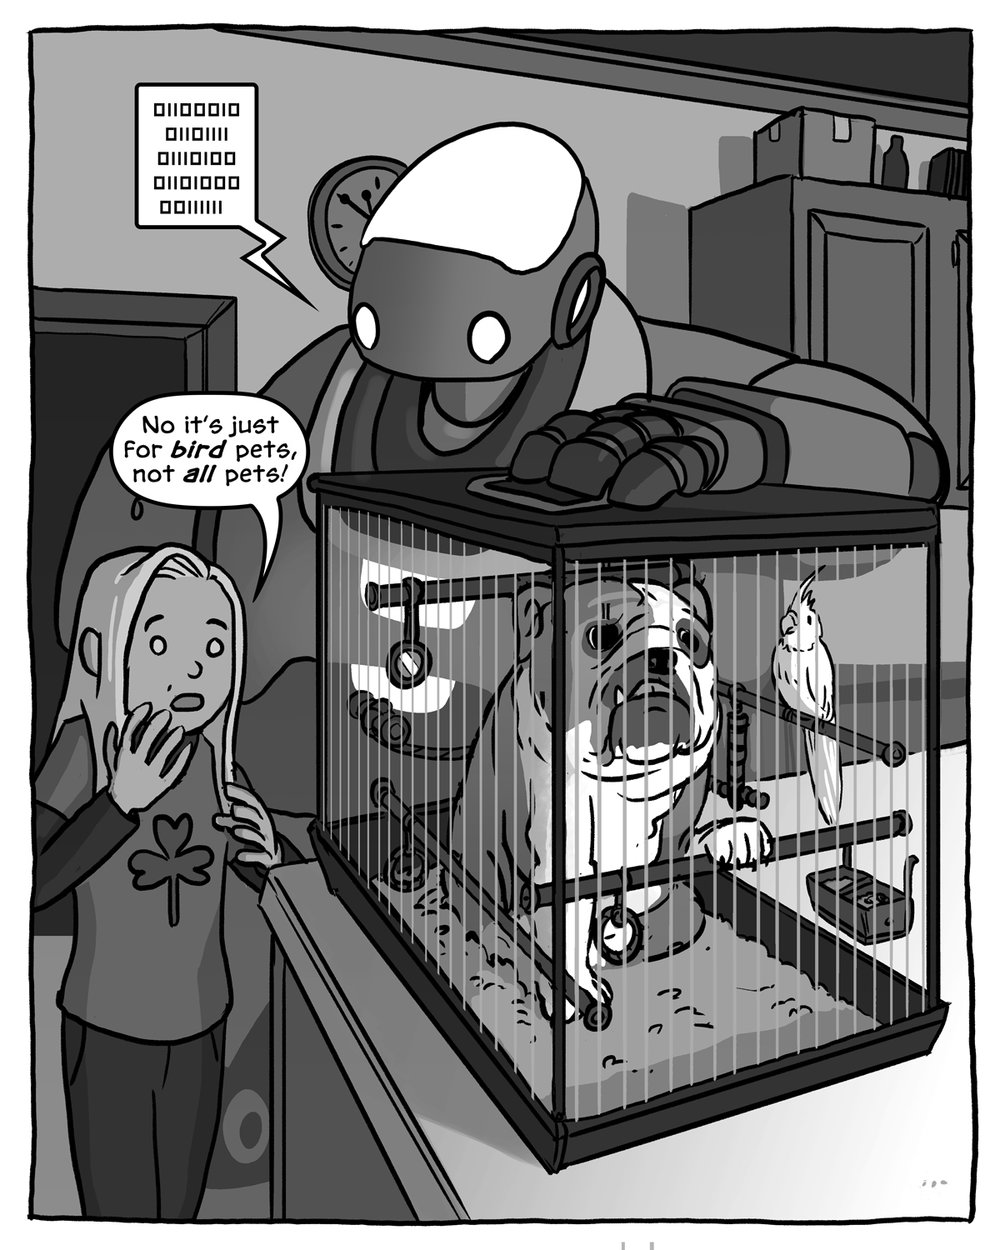 020_Cages.jpg